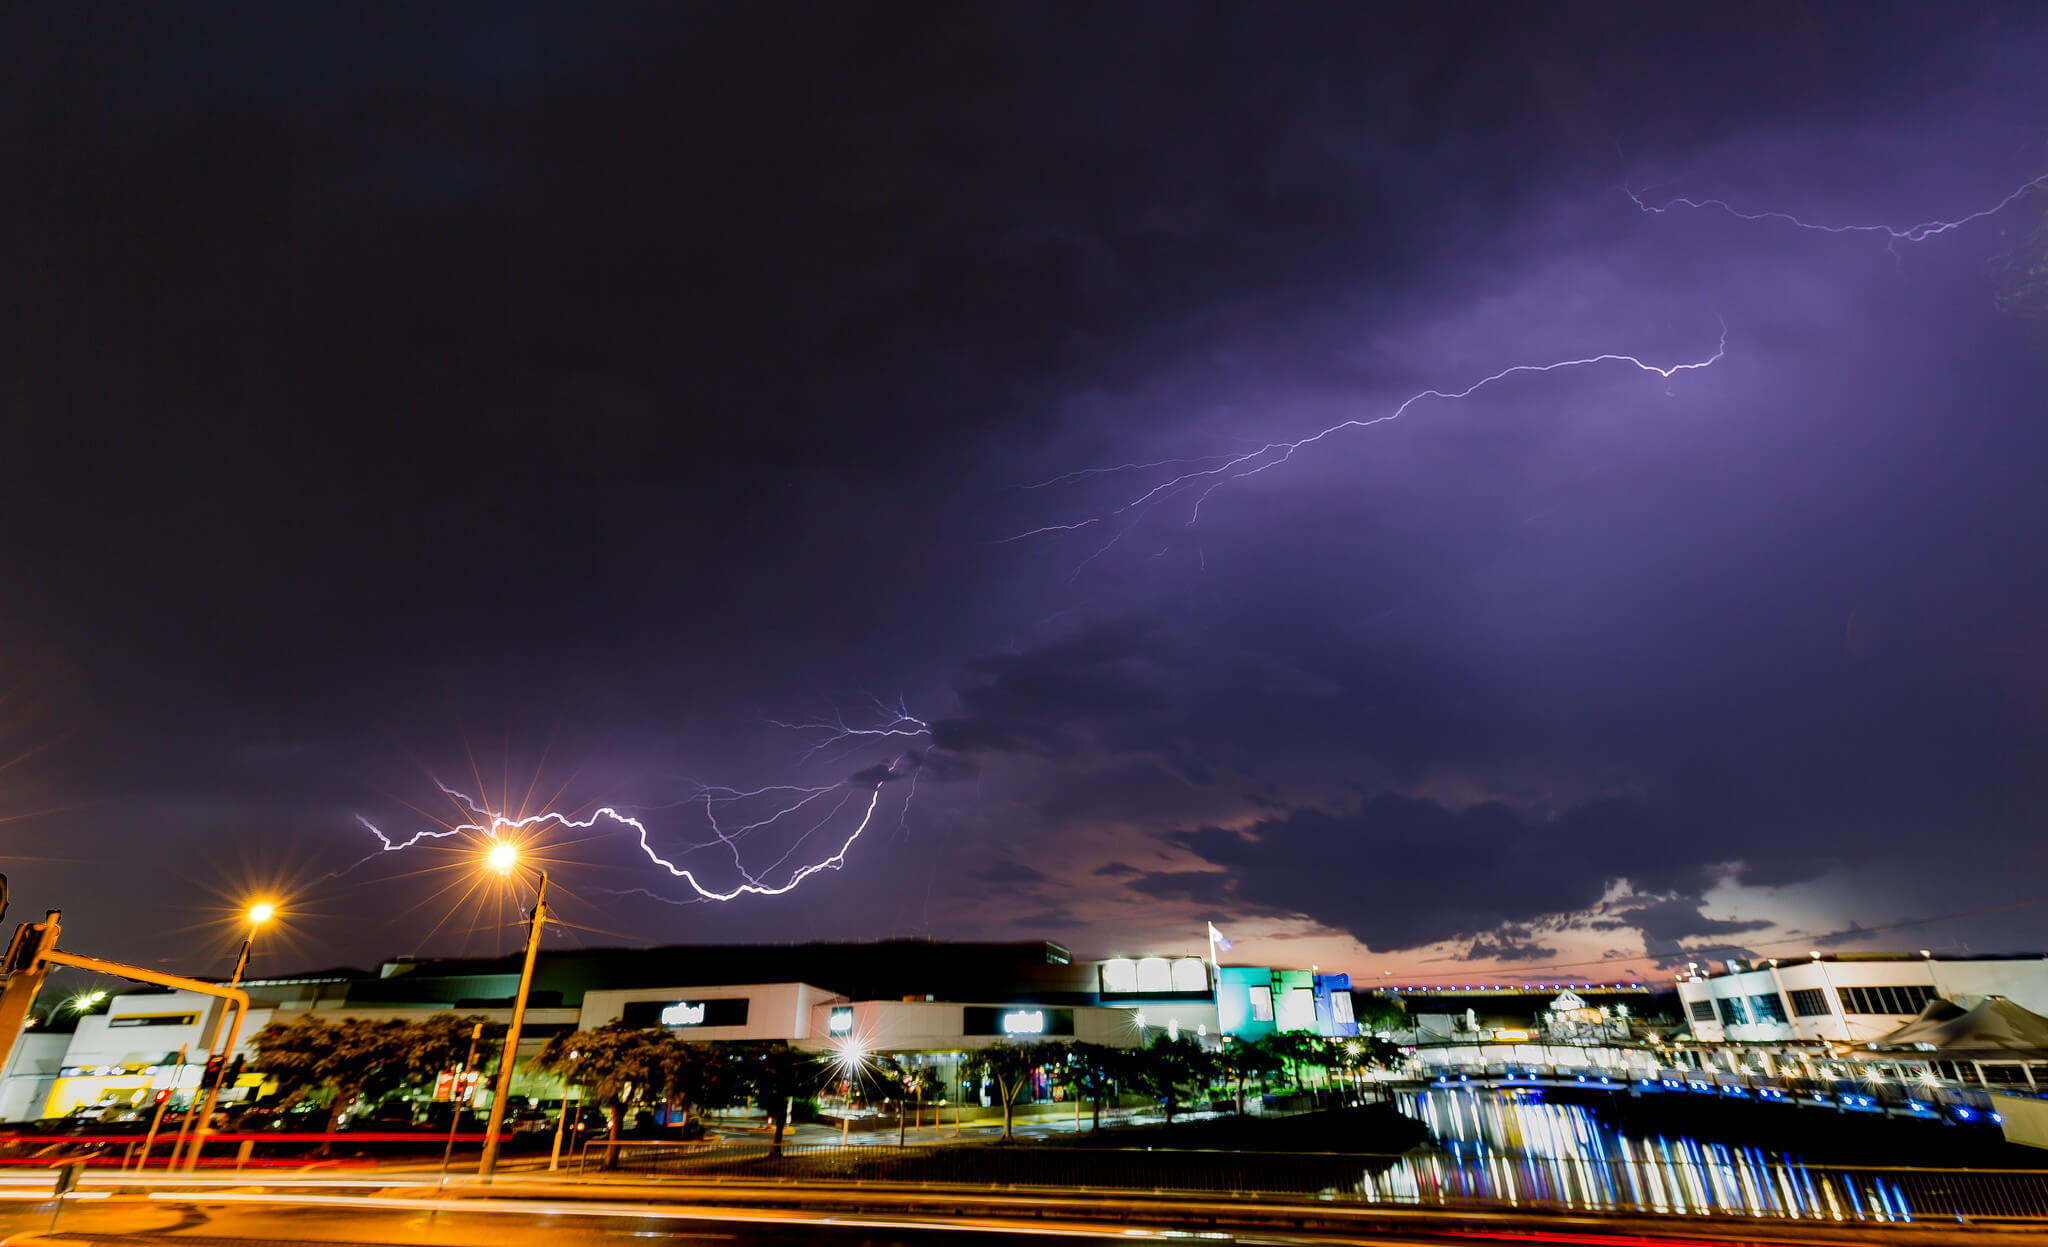 If you enjoy tropical storms, the best time to visit the Sunshine Coast is summer